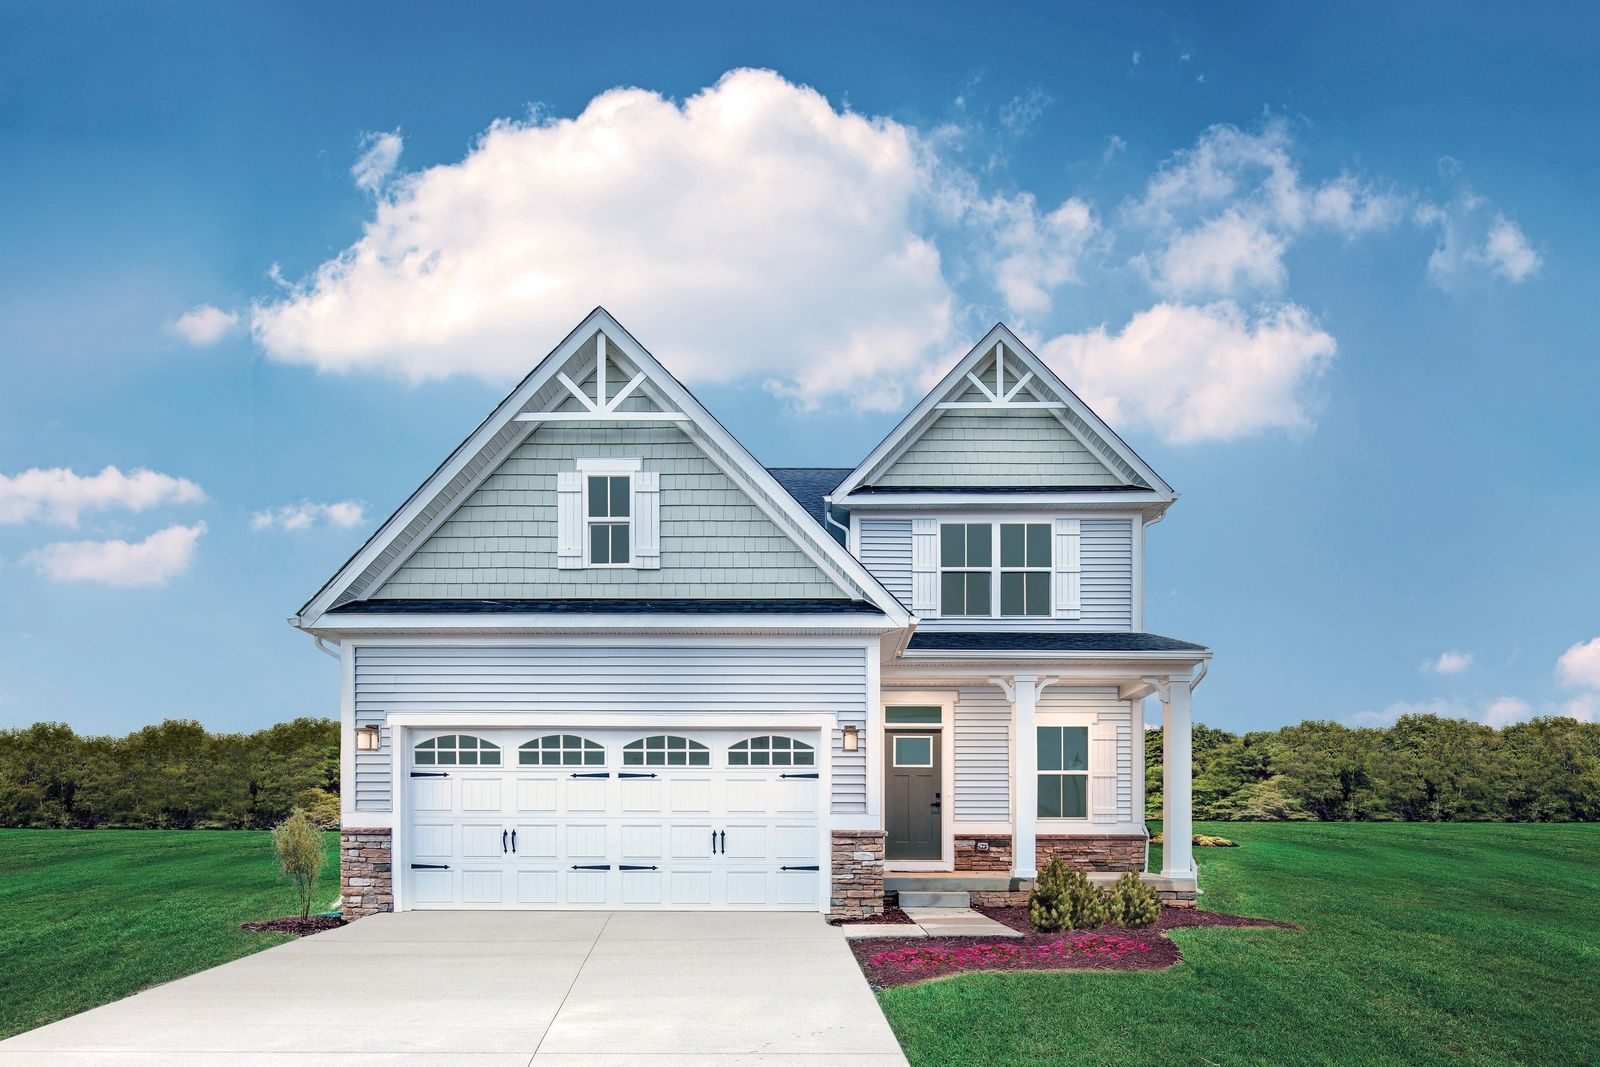 Welcome home to Rosewood!:2-story & ranch homes nestled in a peaceful country setting with easy access to I-275, Eastgate & Beechmont. Located in desirable West Clermont Schools. Upper $200s.Schedule a visit today!